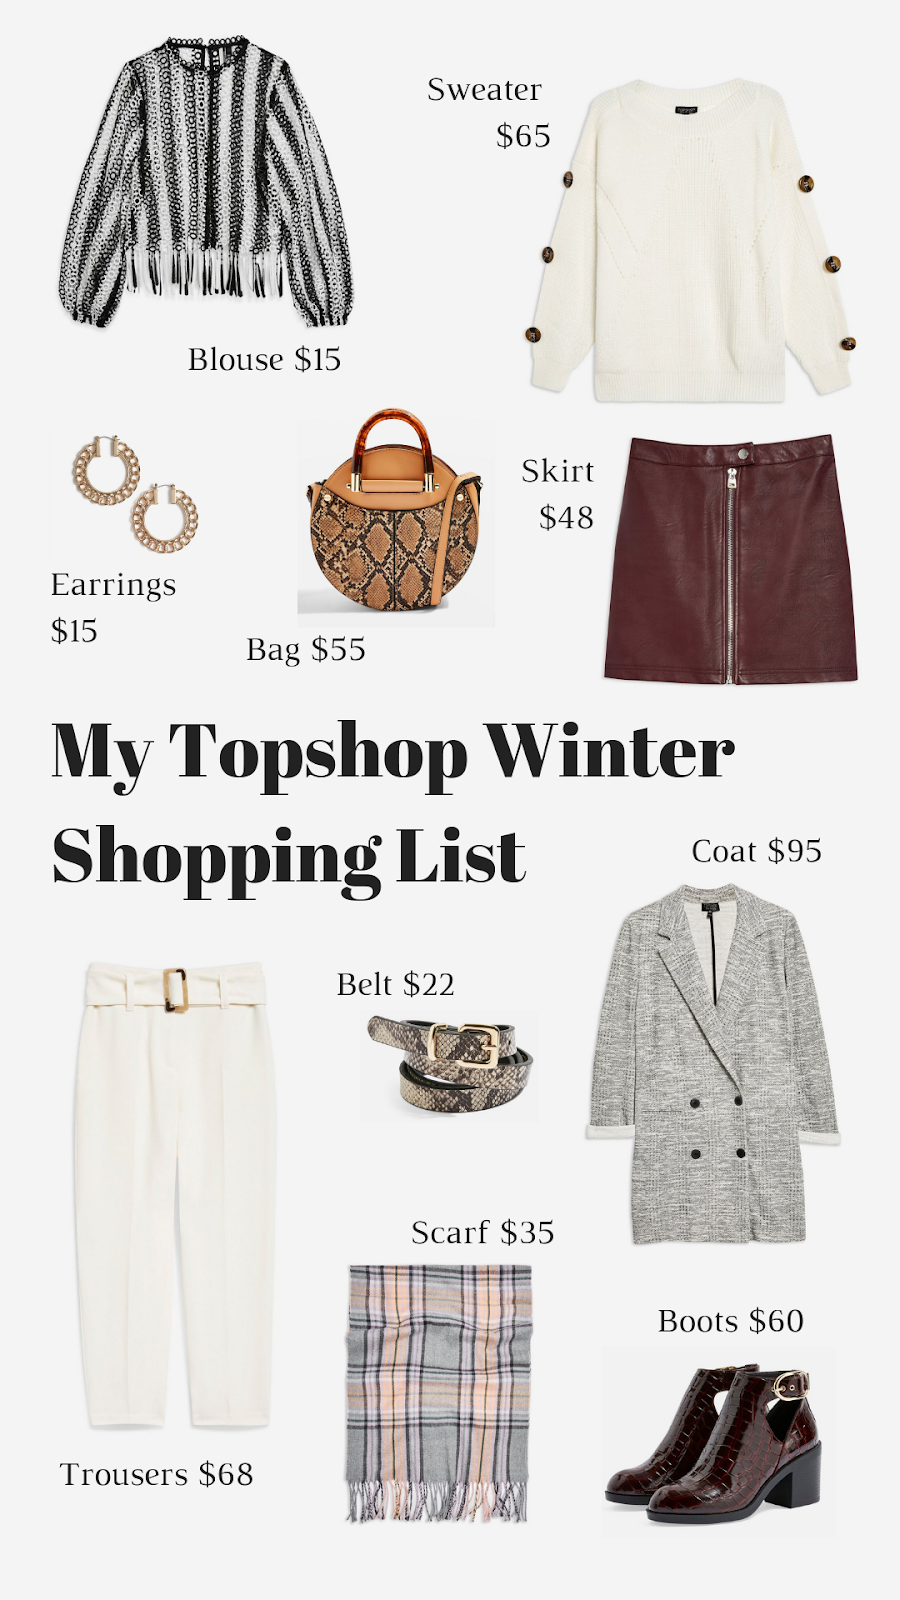 My Topshop Winter Shopping List